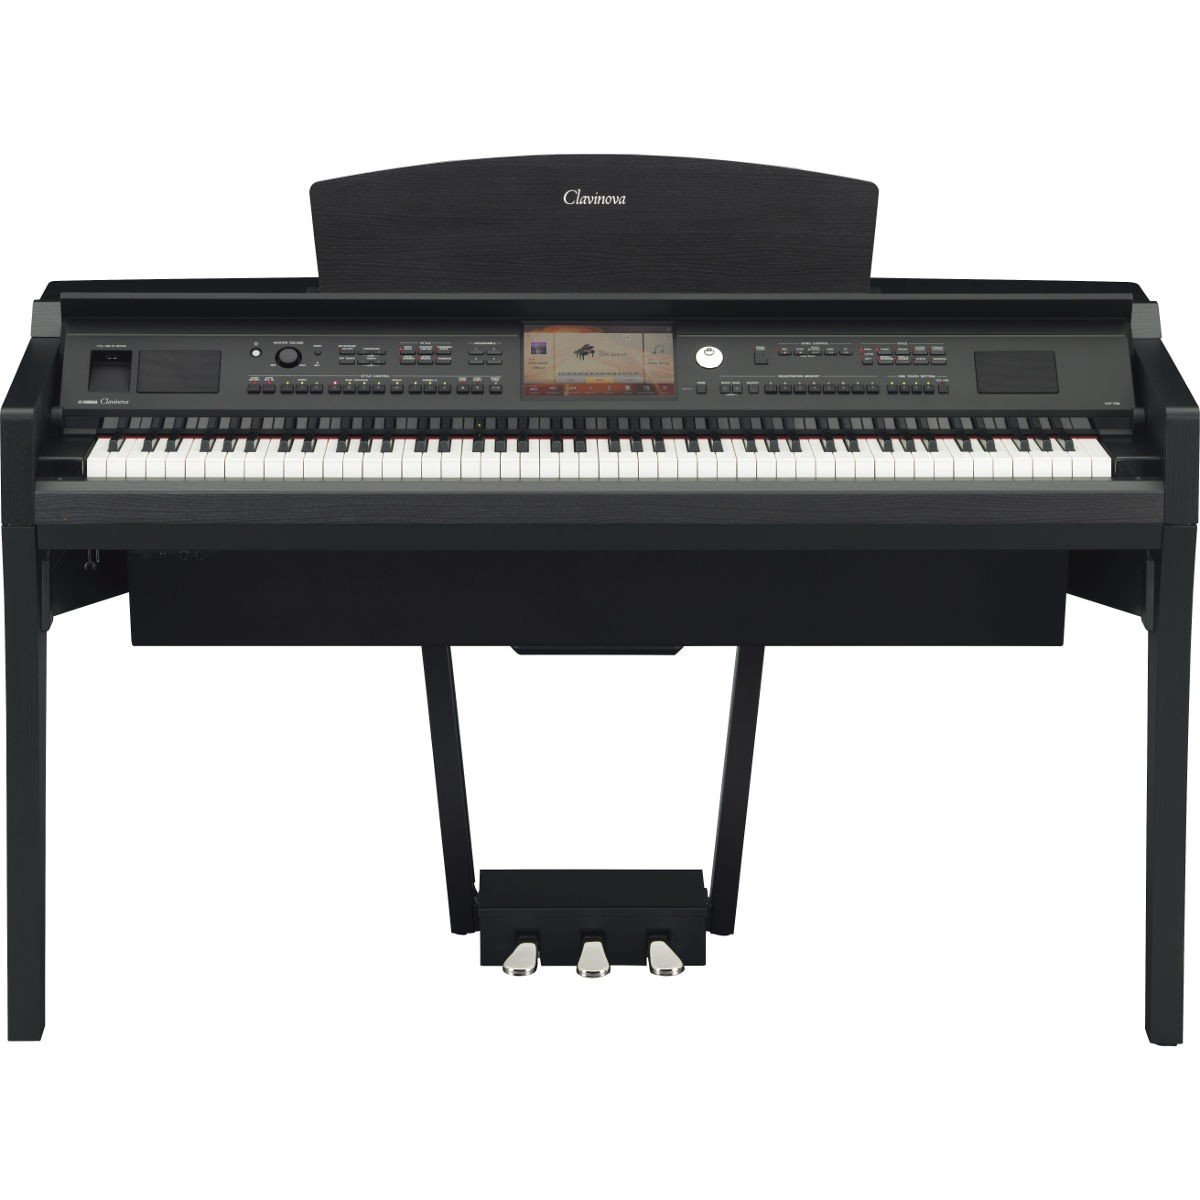 yamaha clavinova digital piano cvp 709 absolute pianoabsolute piano. Black Bedroom Furniture Sets. Home Design Ideas